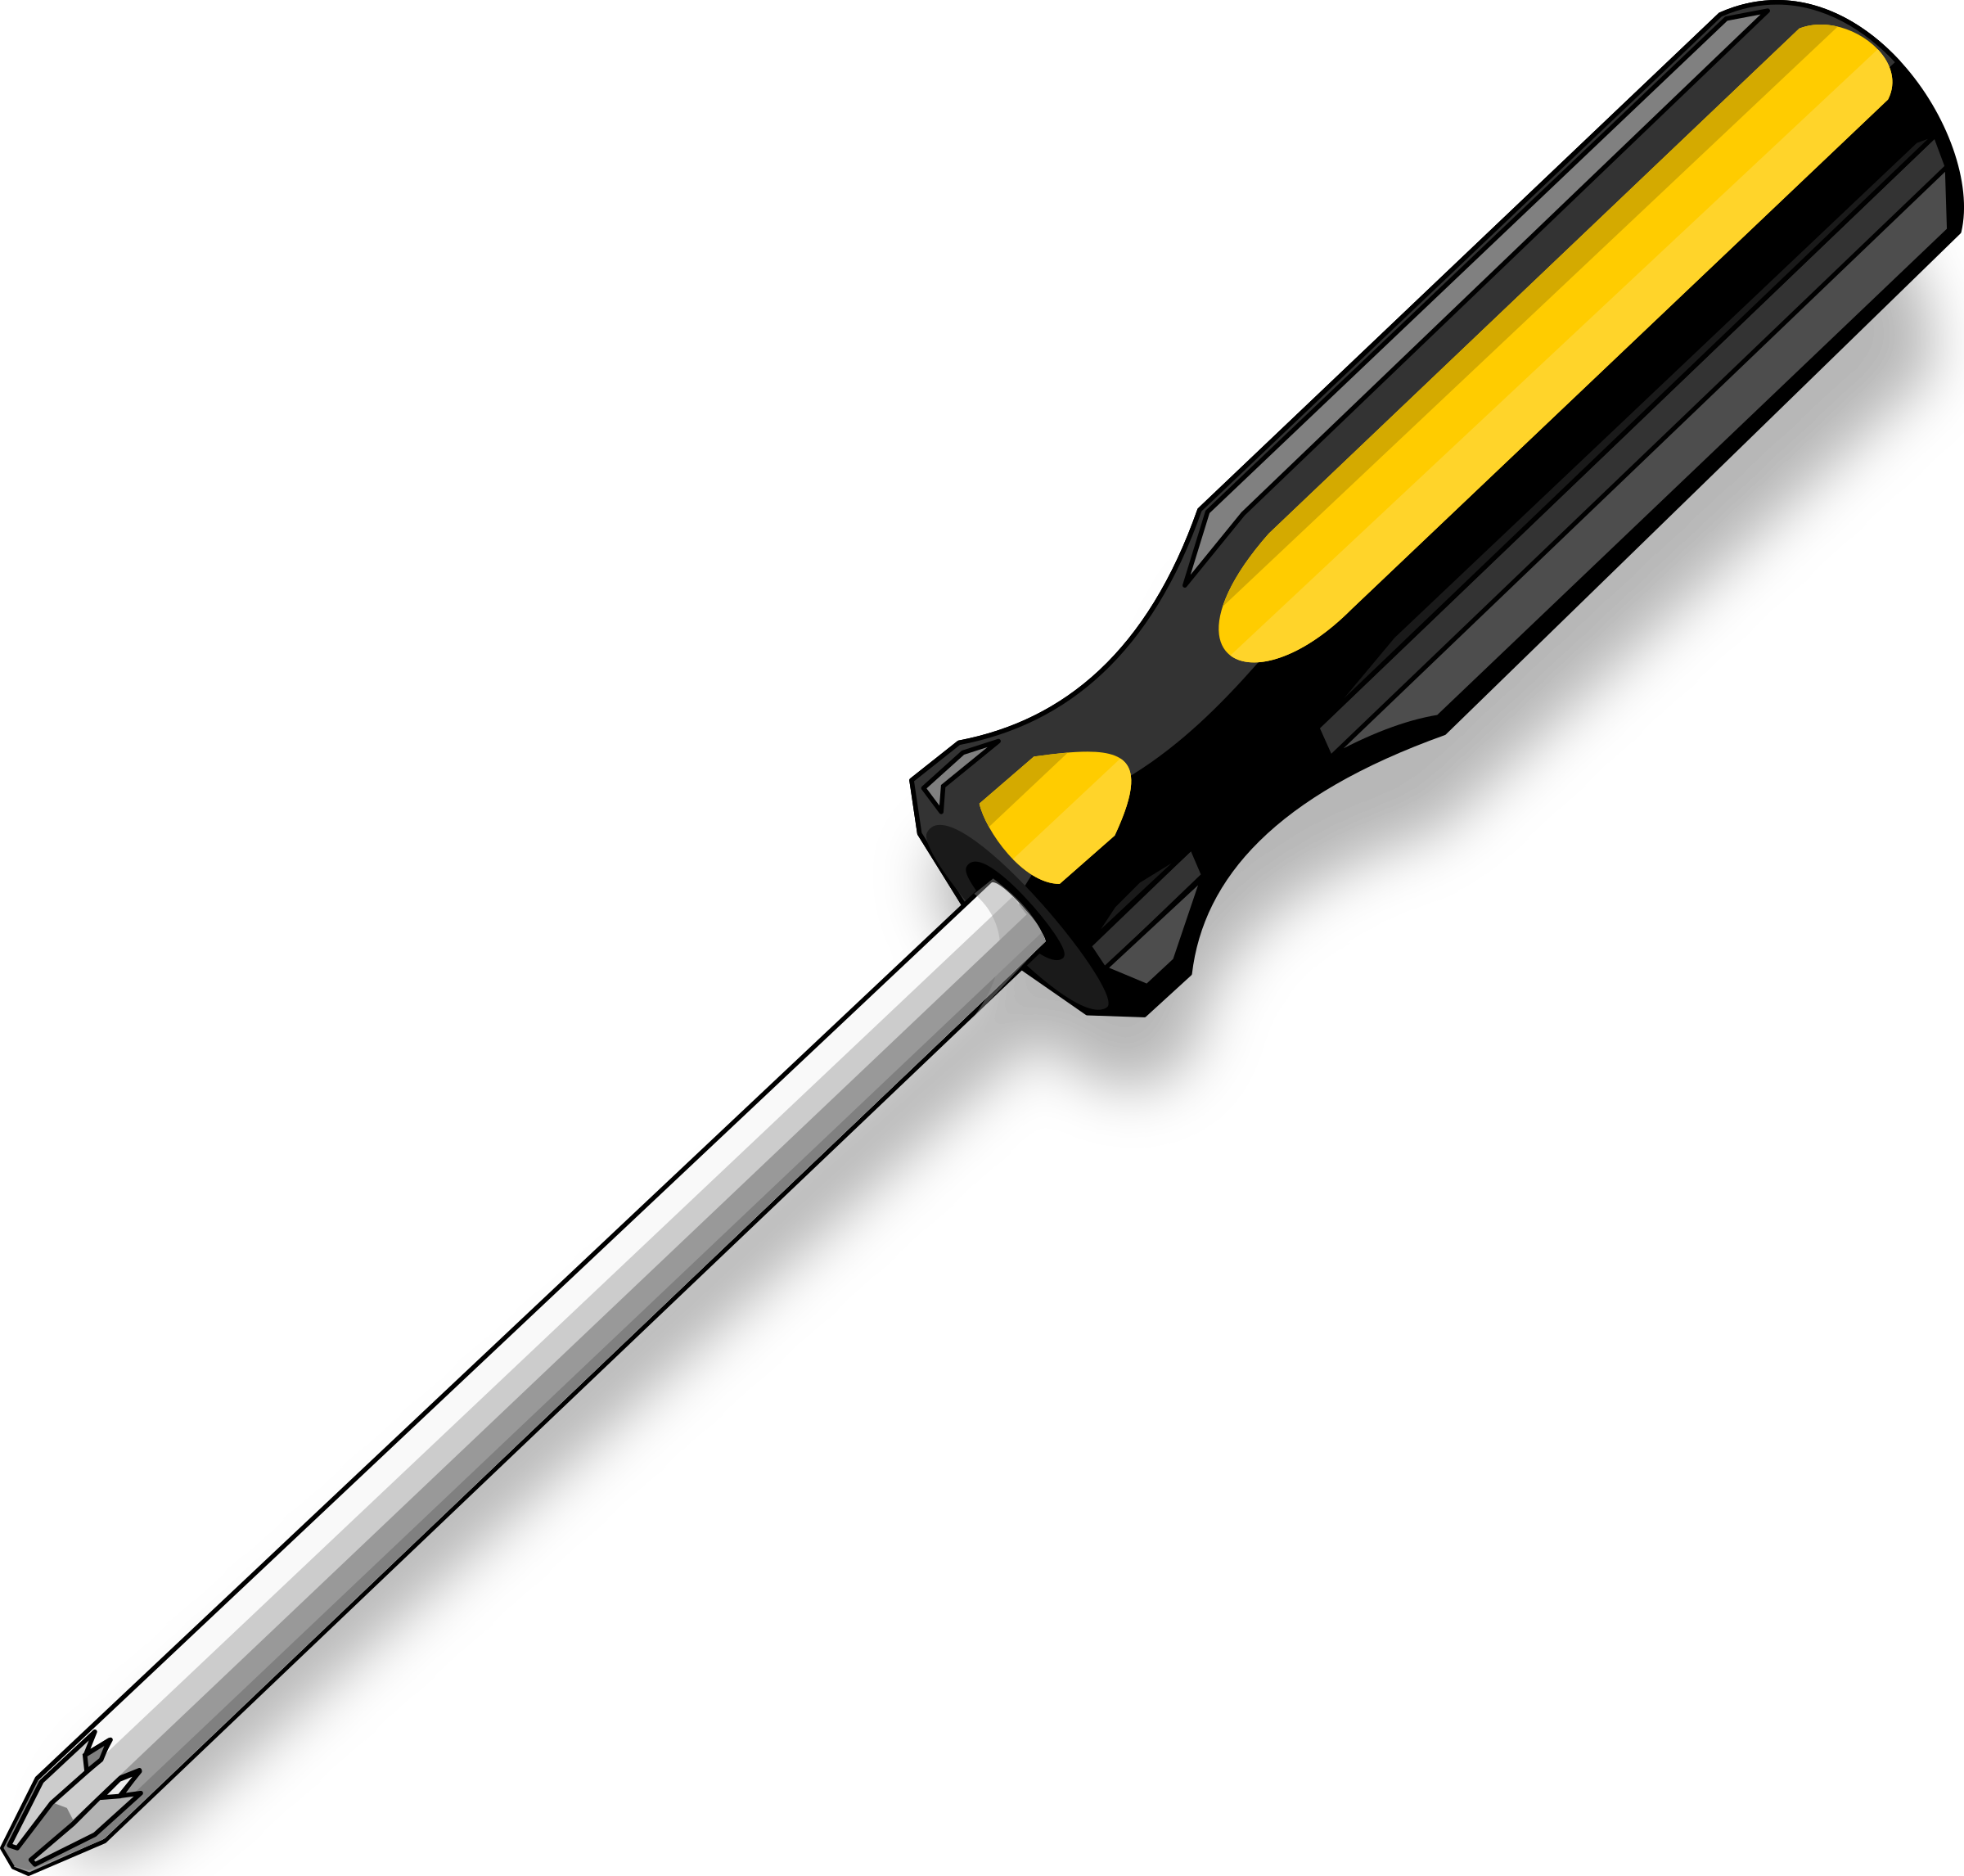 A screwdriver by BigRedSmile